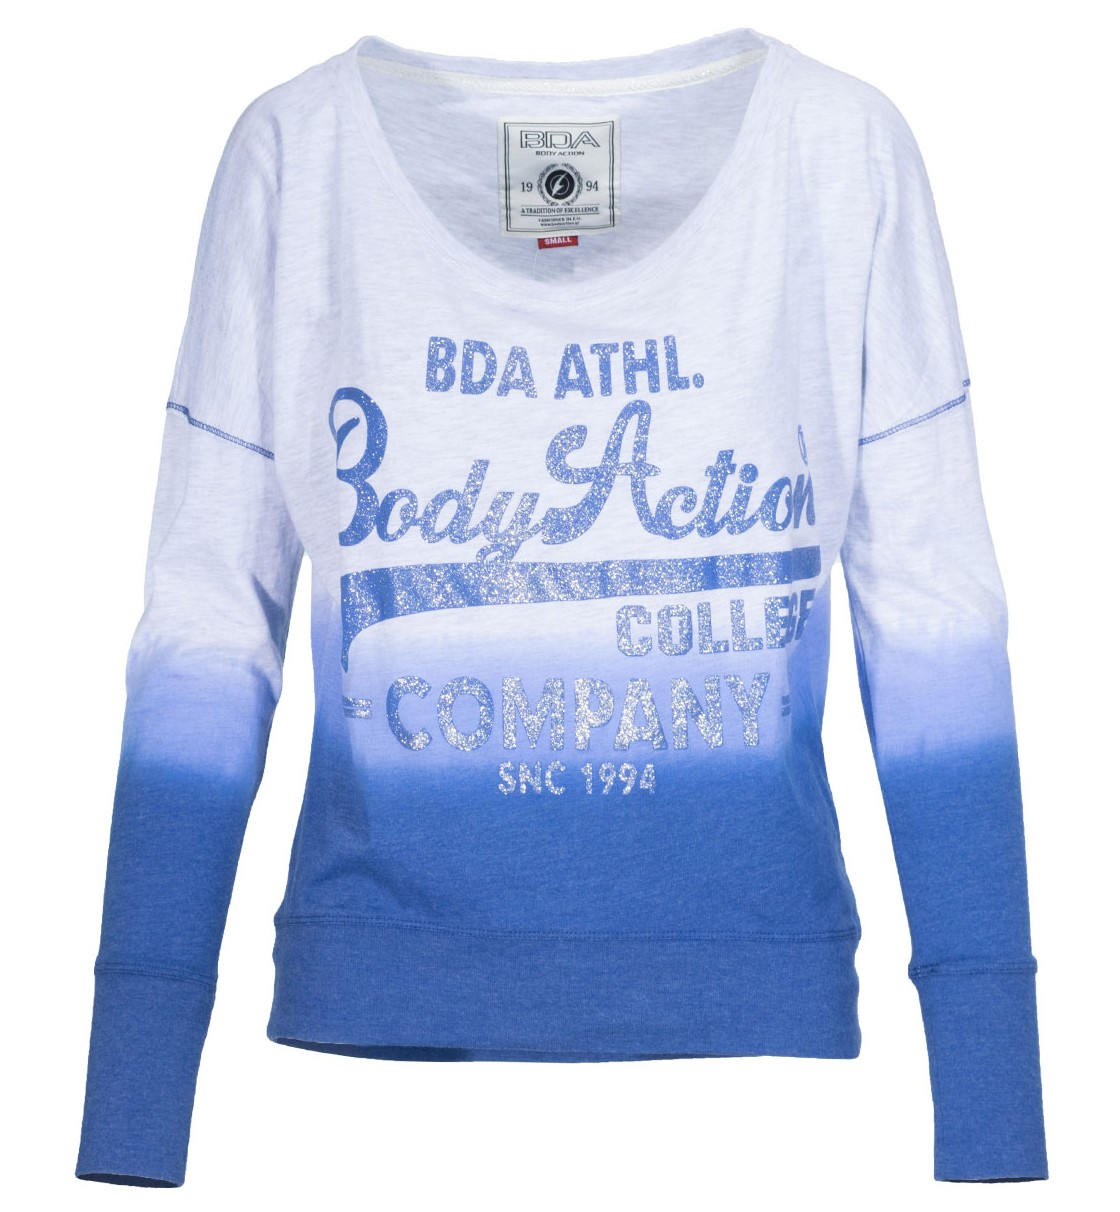 Body Action Women Dyp Dyed Bat Style Top